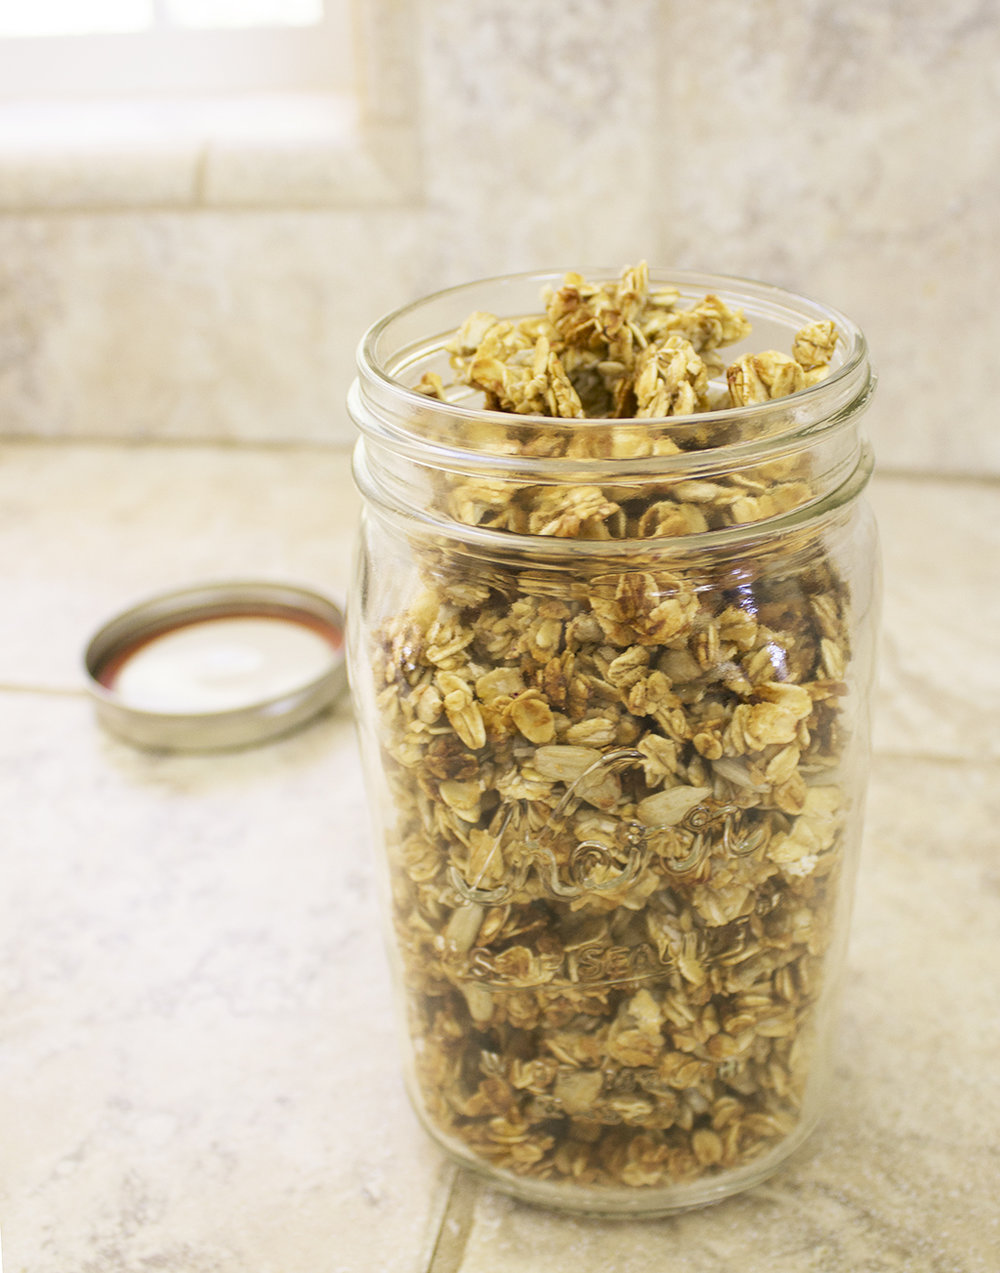 Healthy Vegan Crunchy Banana Granola In Jar